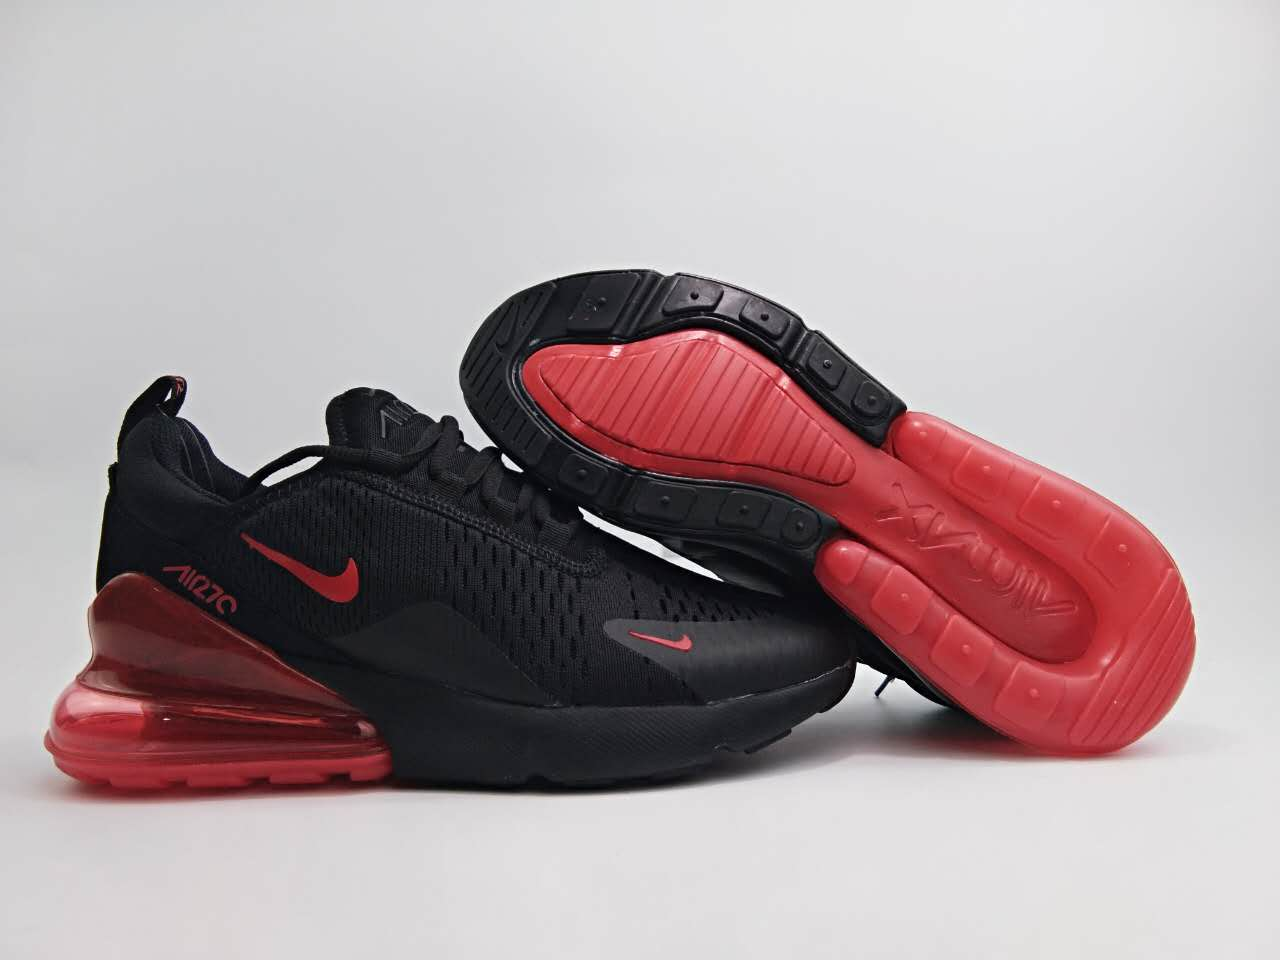 Bella Messaggero pneumatico  Women Nike Air Max Flair 270 Nano Black Red Shoes [18running3145] - $70.00  : Real Nike Running Shoes, Nike Running Shoes